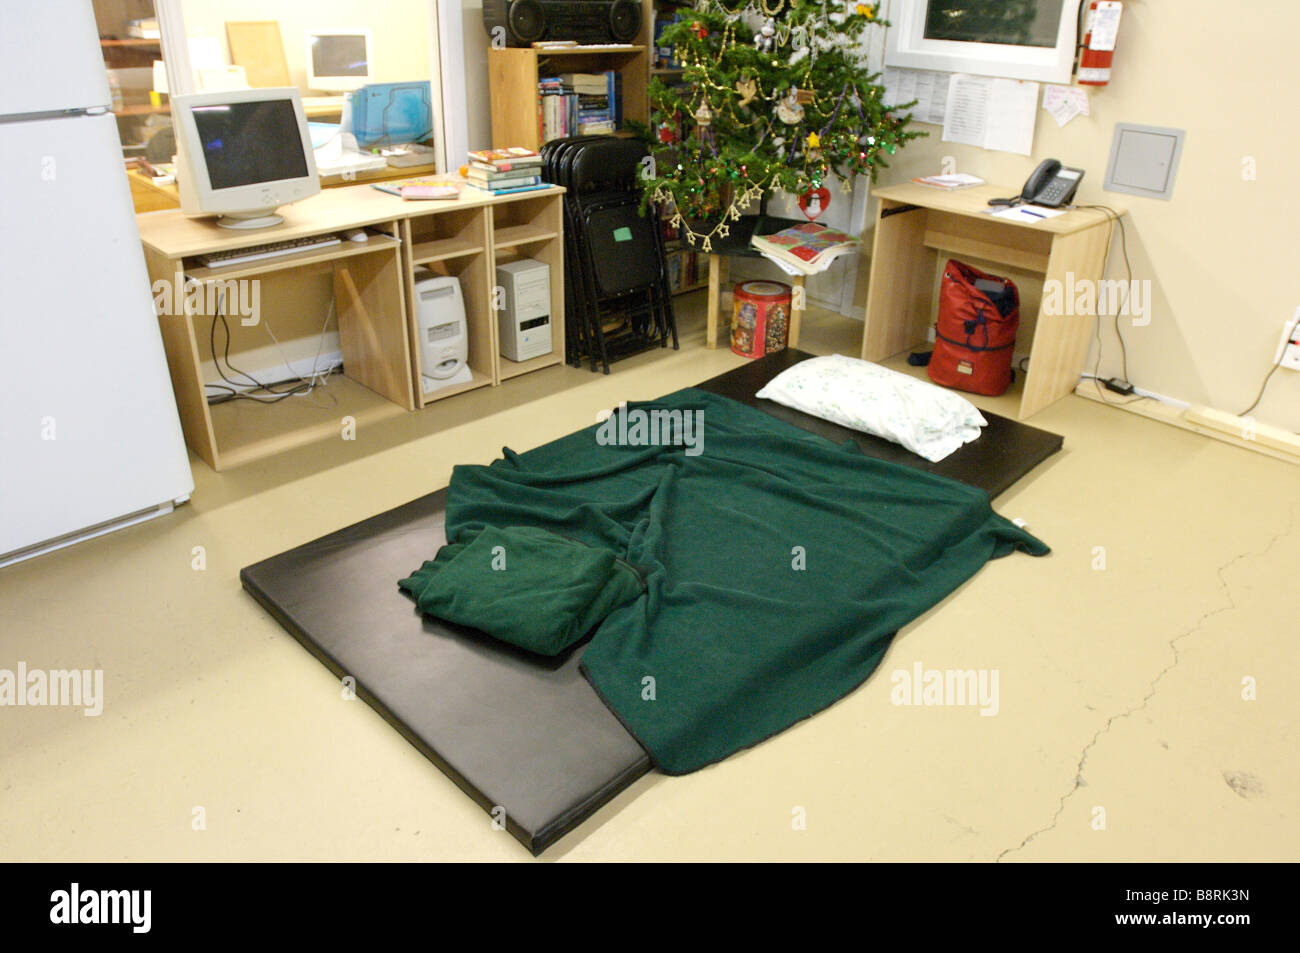 Bed at a homeless shelter.  a mattress on a floor serves as a bed at homeless shelter.  Squamish BC, Canada.  Temporary - Stock Image